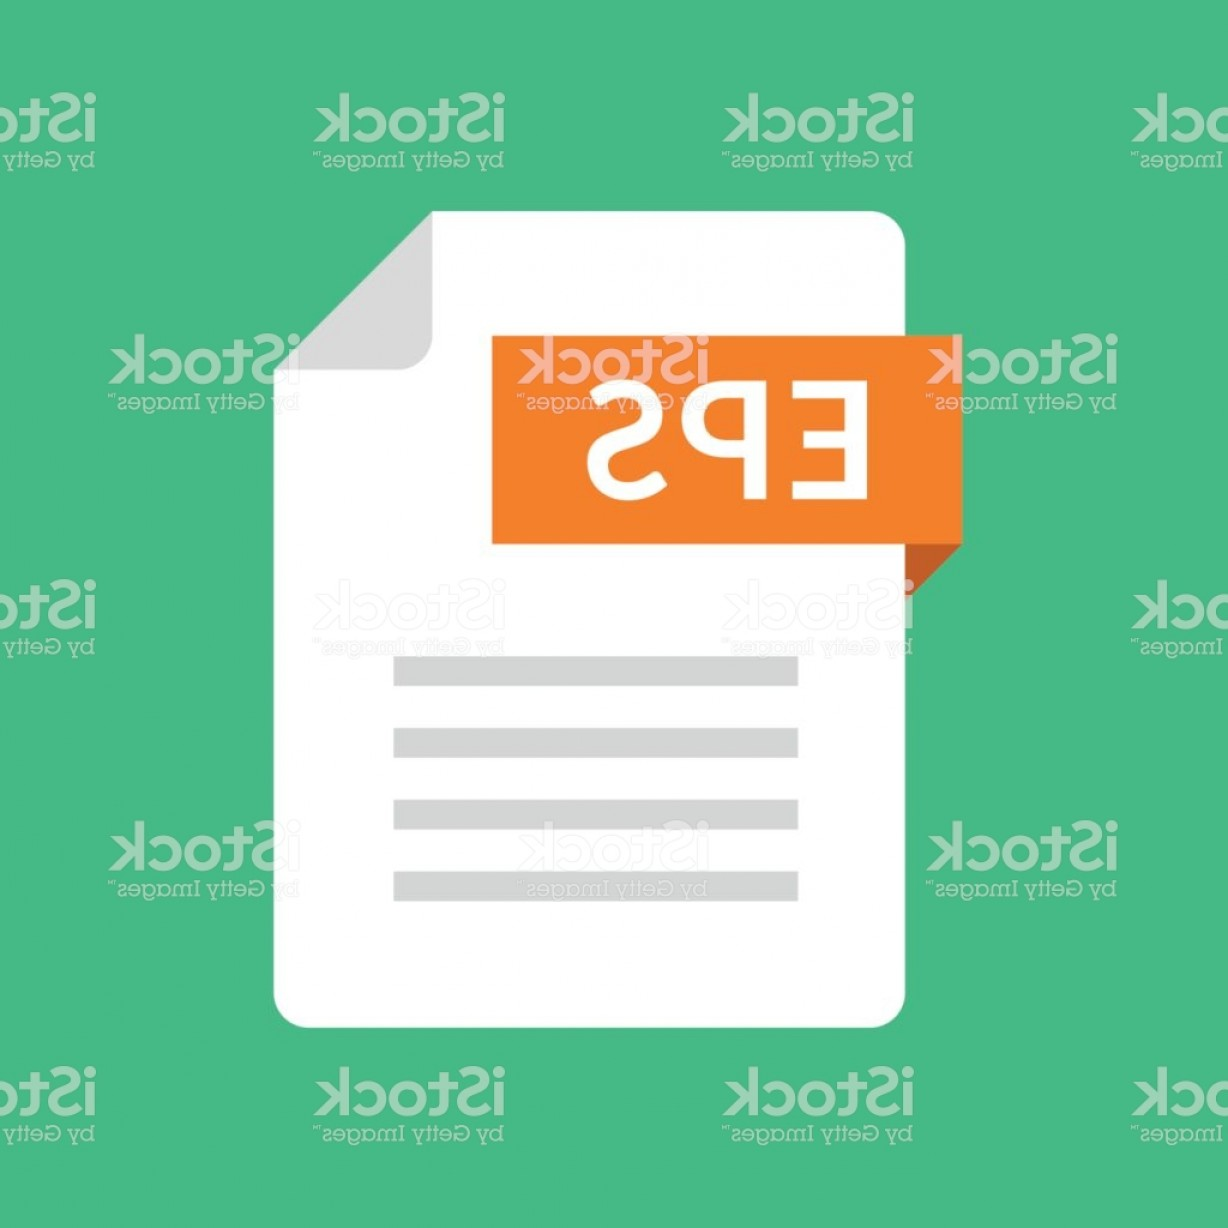 File Extension Vector Art: Eps File Icon Encapsulated Postscript Document Type File Extension Flat Design Gm